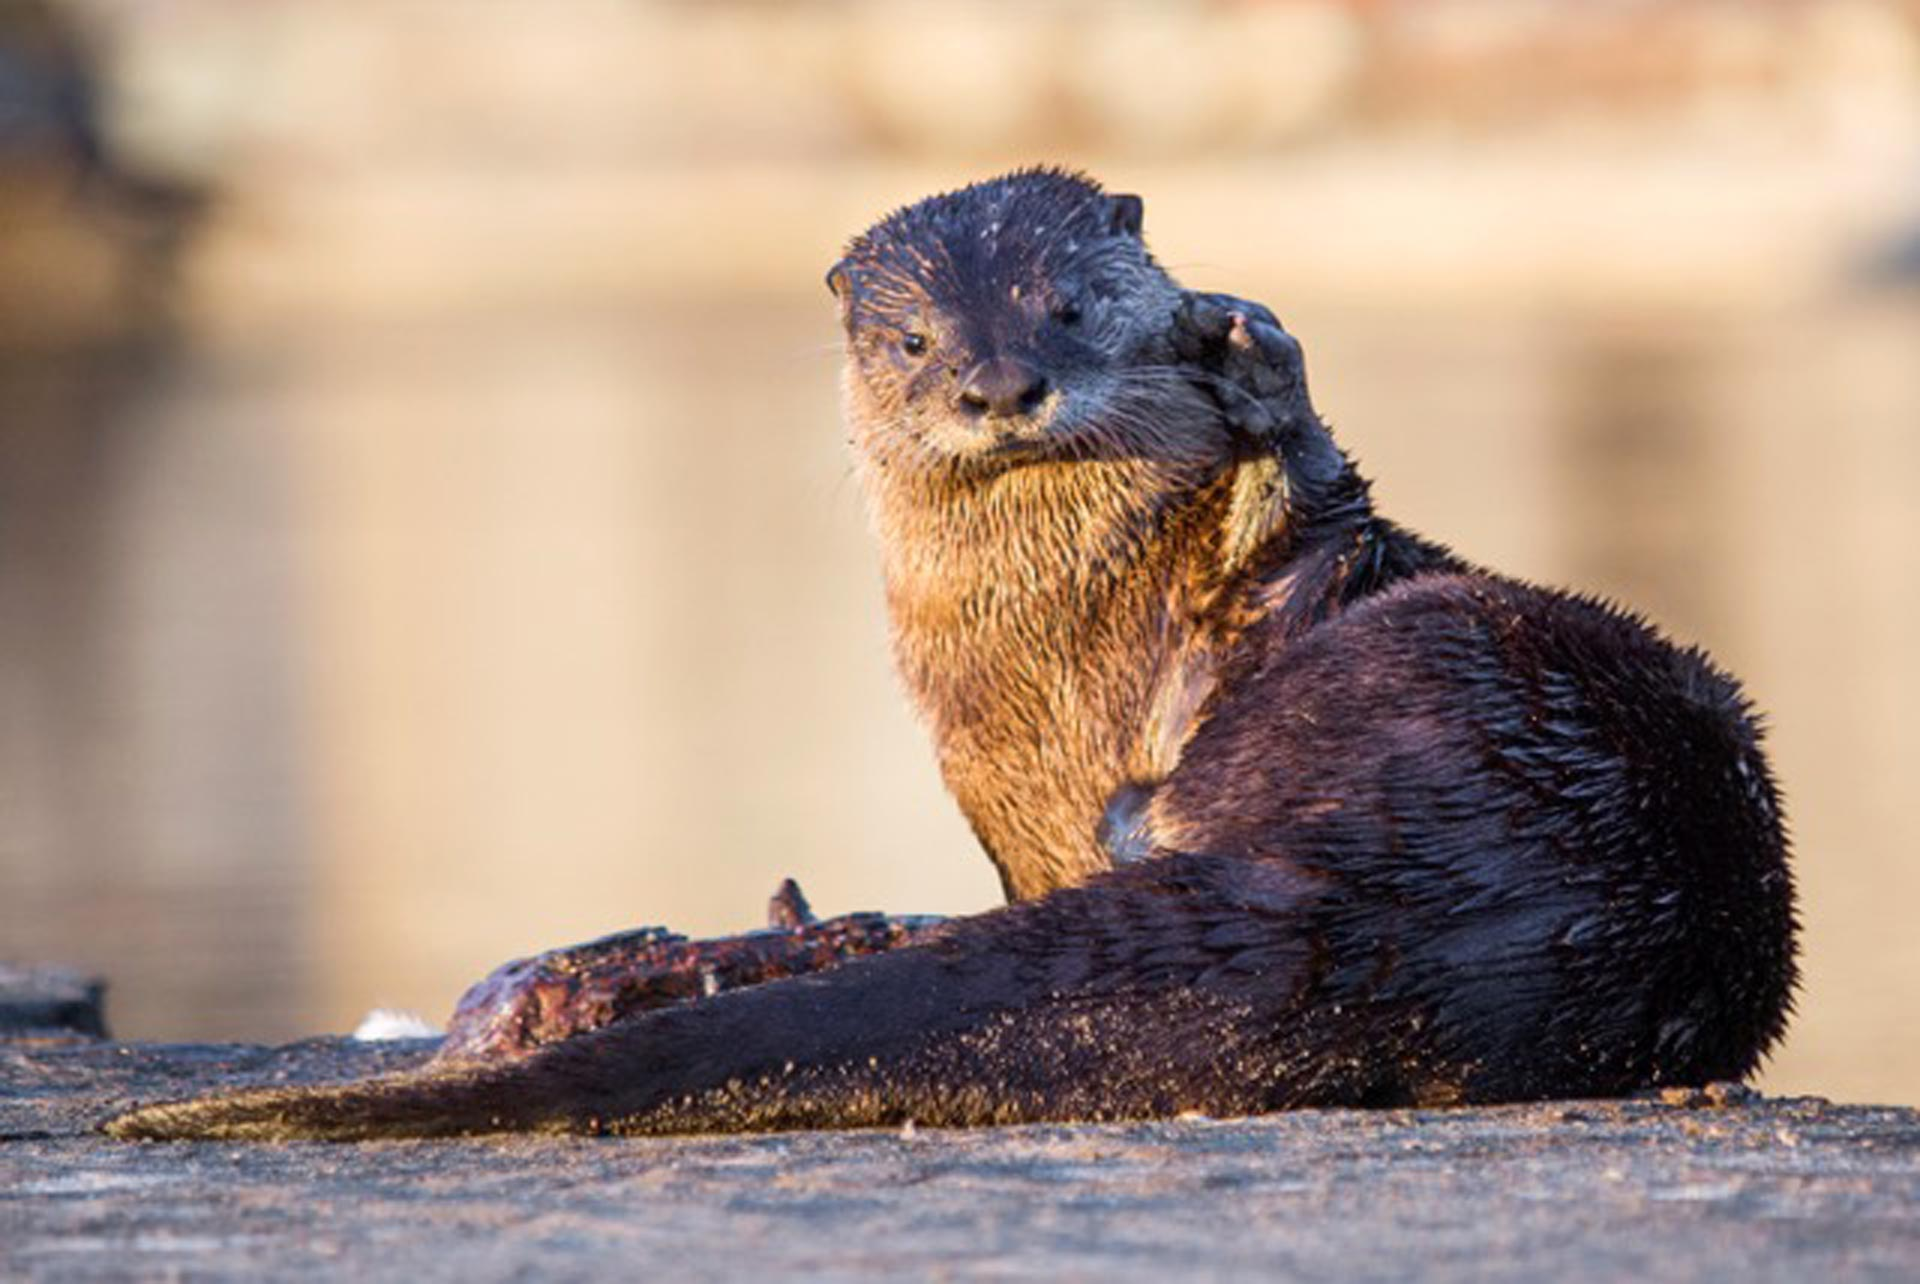 Sutro Sam, San Francisco's famous river otter, hung around Land's End for months in 2012 before disappearing again. Sam is the only river otter to be seen in San Francisco in recent memory.